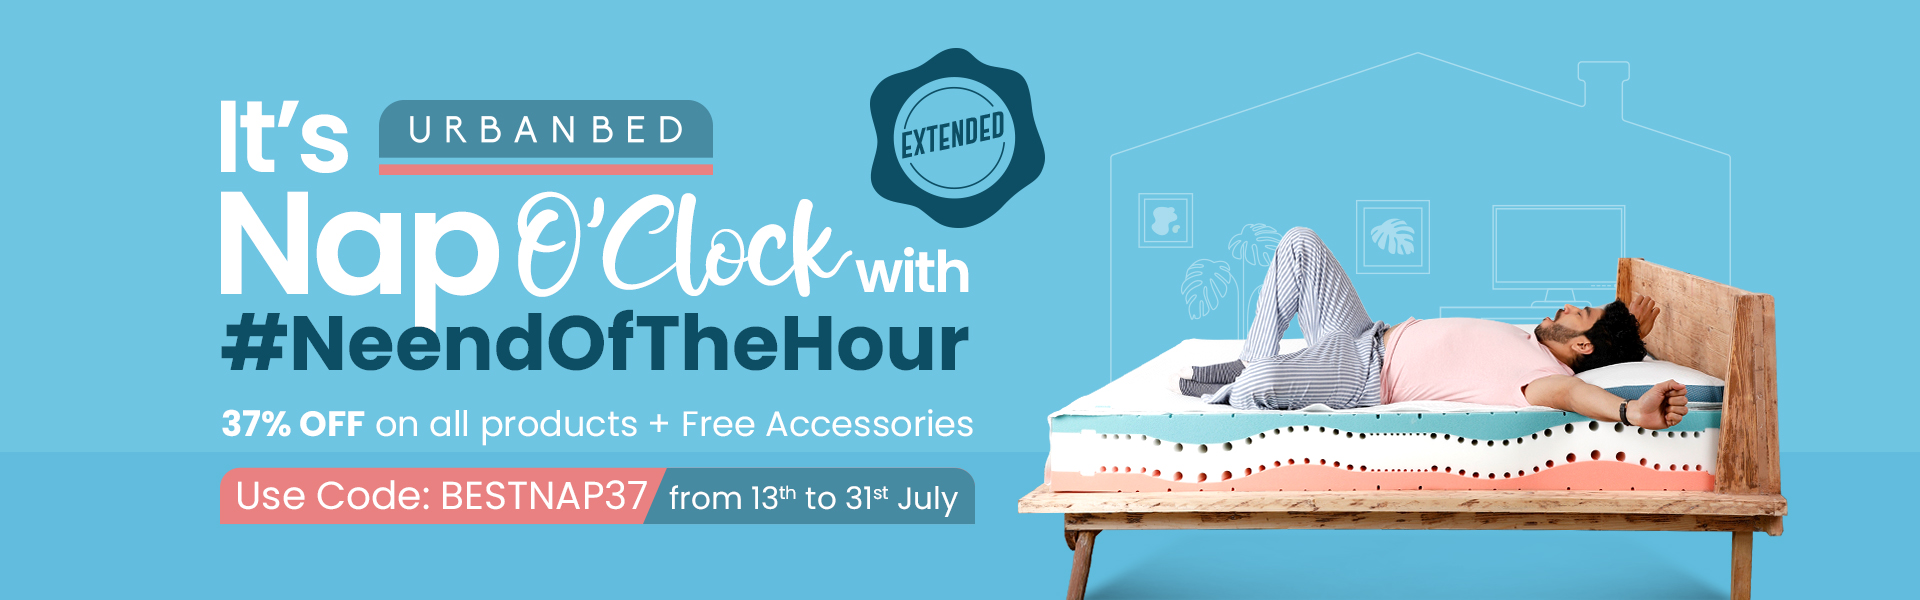 Neend of the hour extension